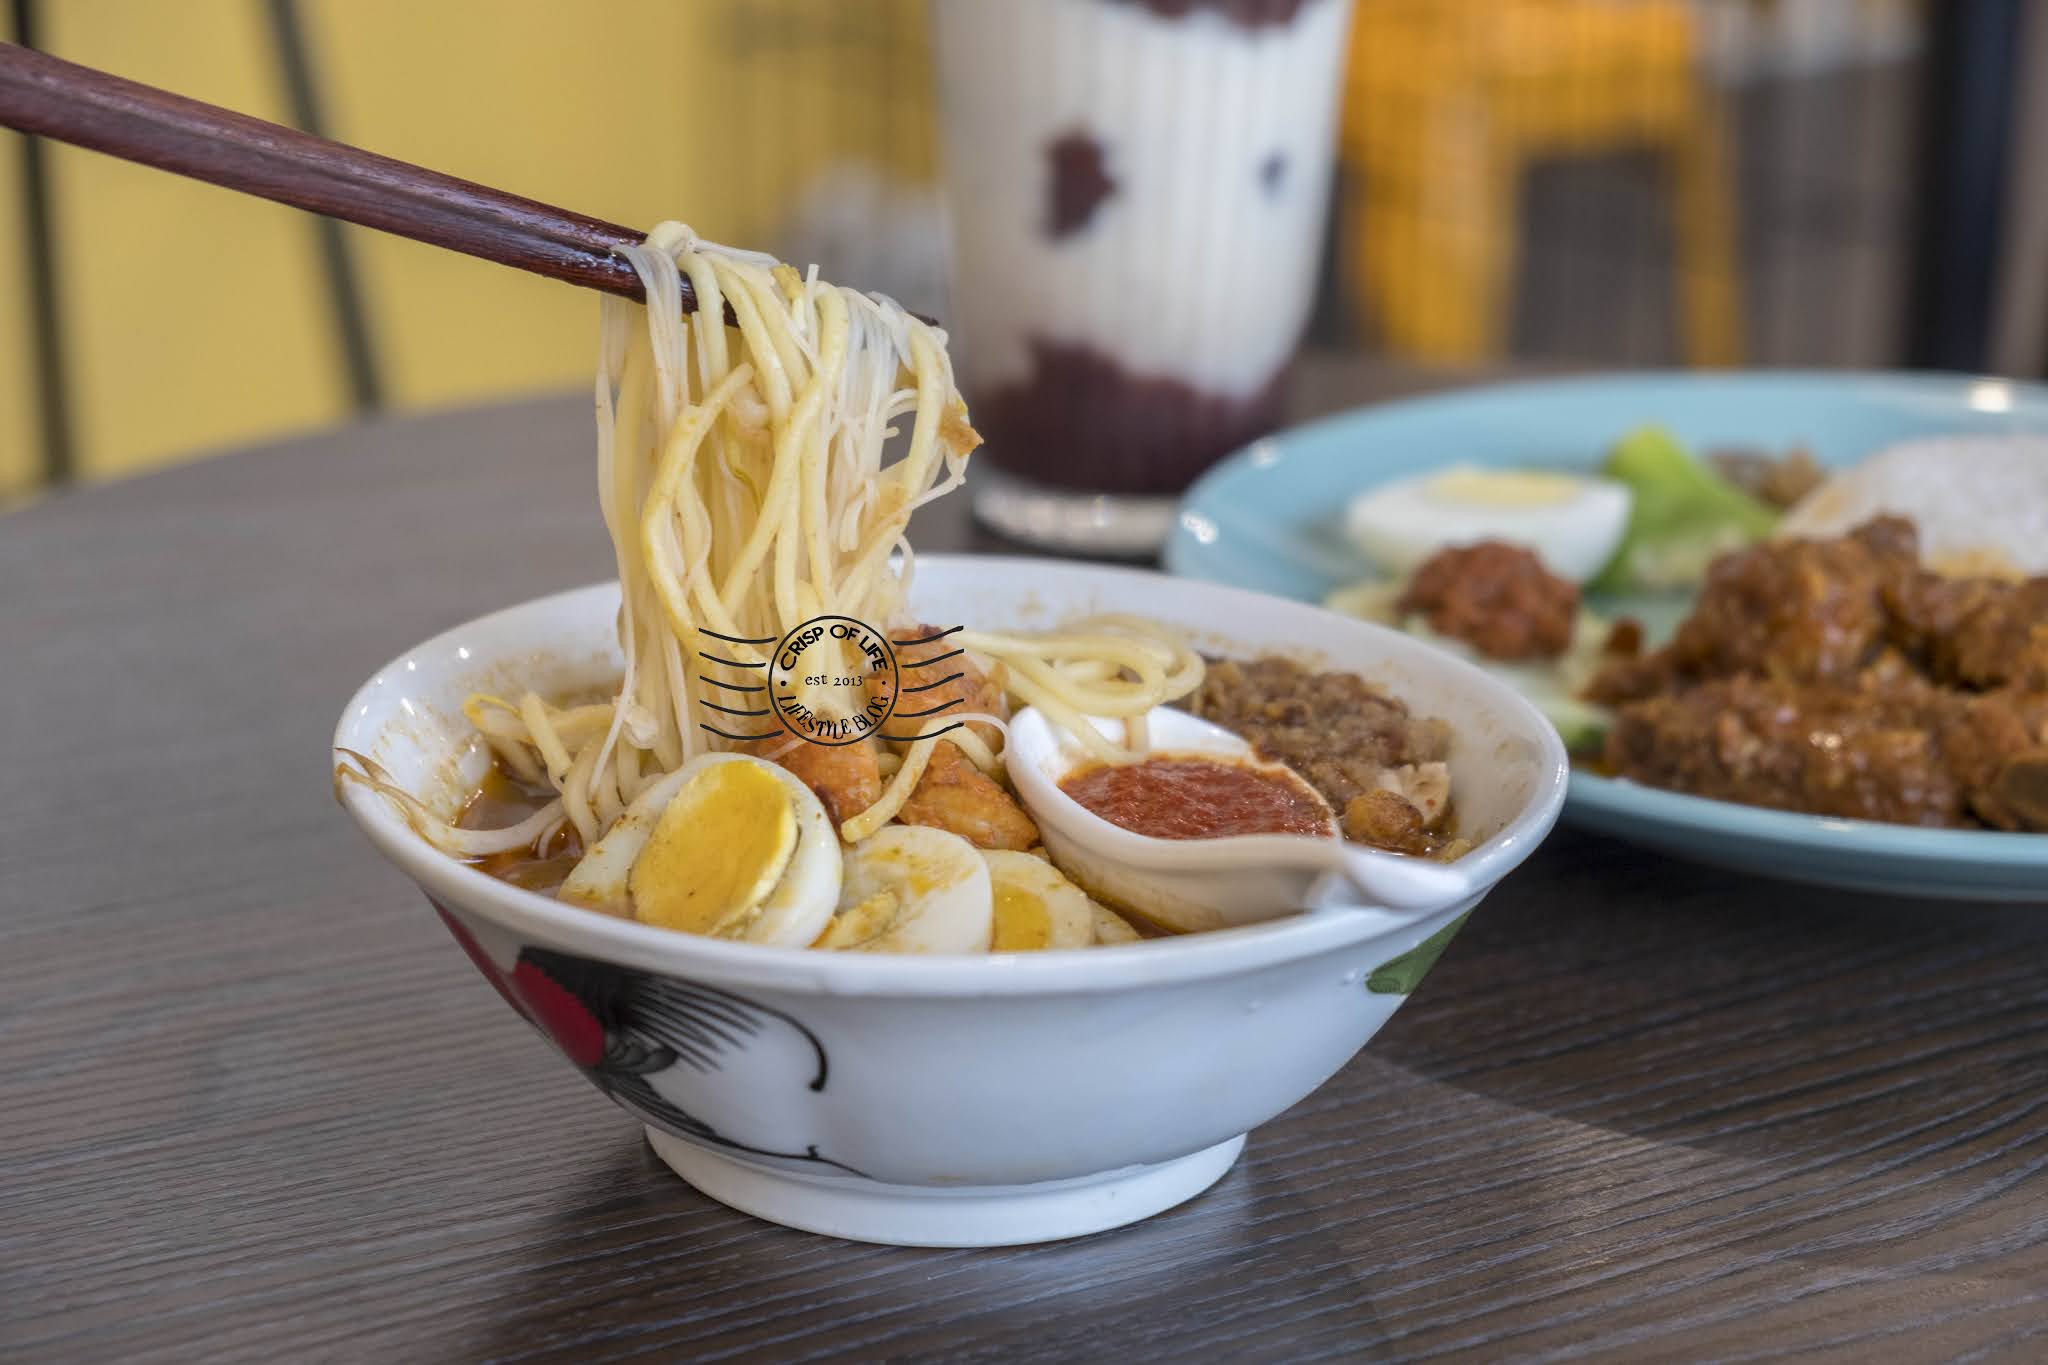 Genki Canteen 元气食堂 - A Premium Local Penang Hawker Food Cafe